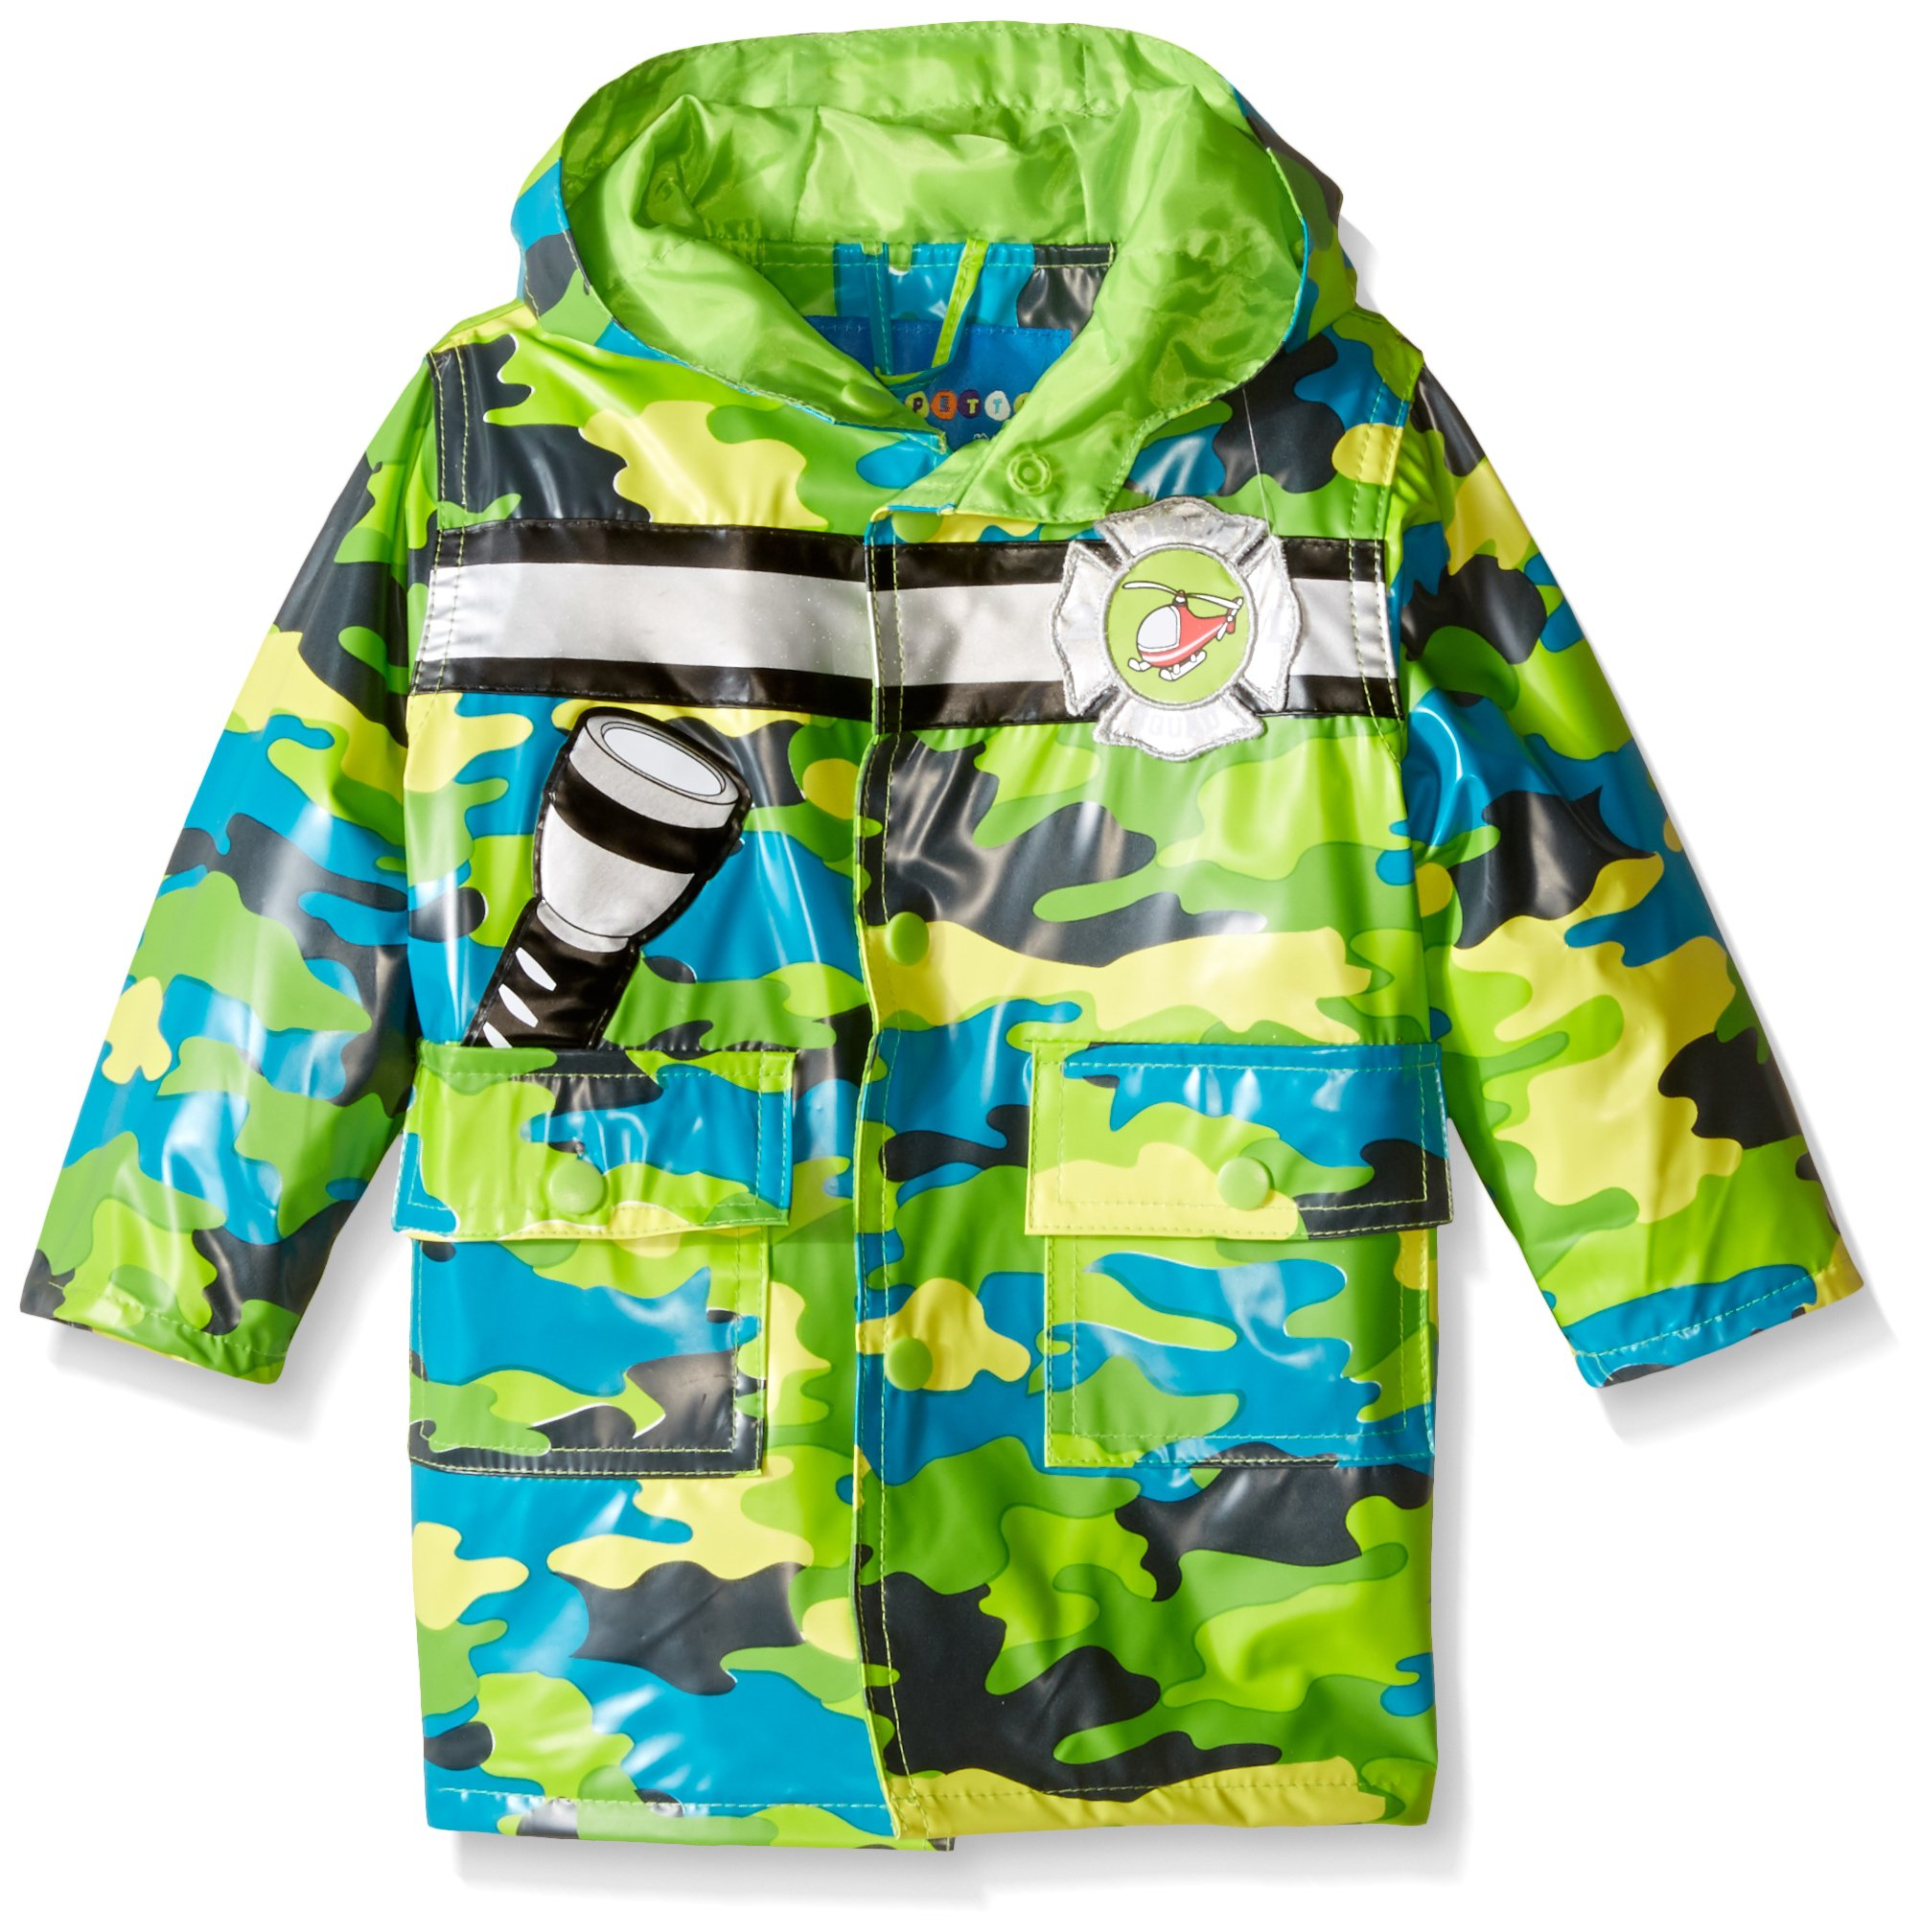 Wippette Baby Boys' Camo with Chopper Rainwear, Gecko, 24 Months by Wippette